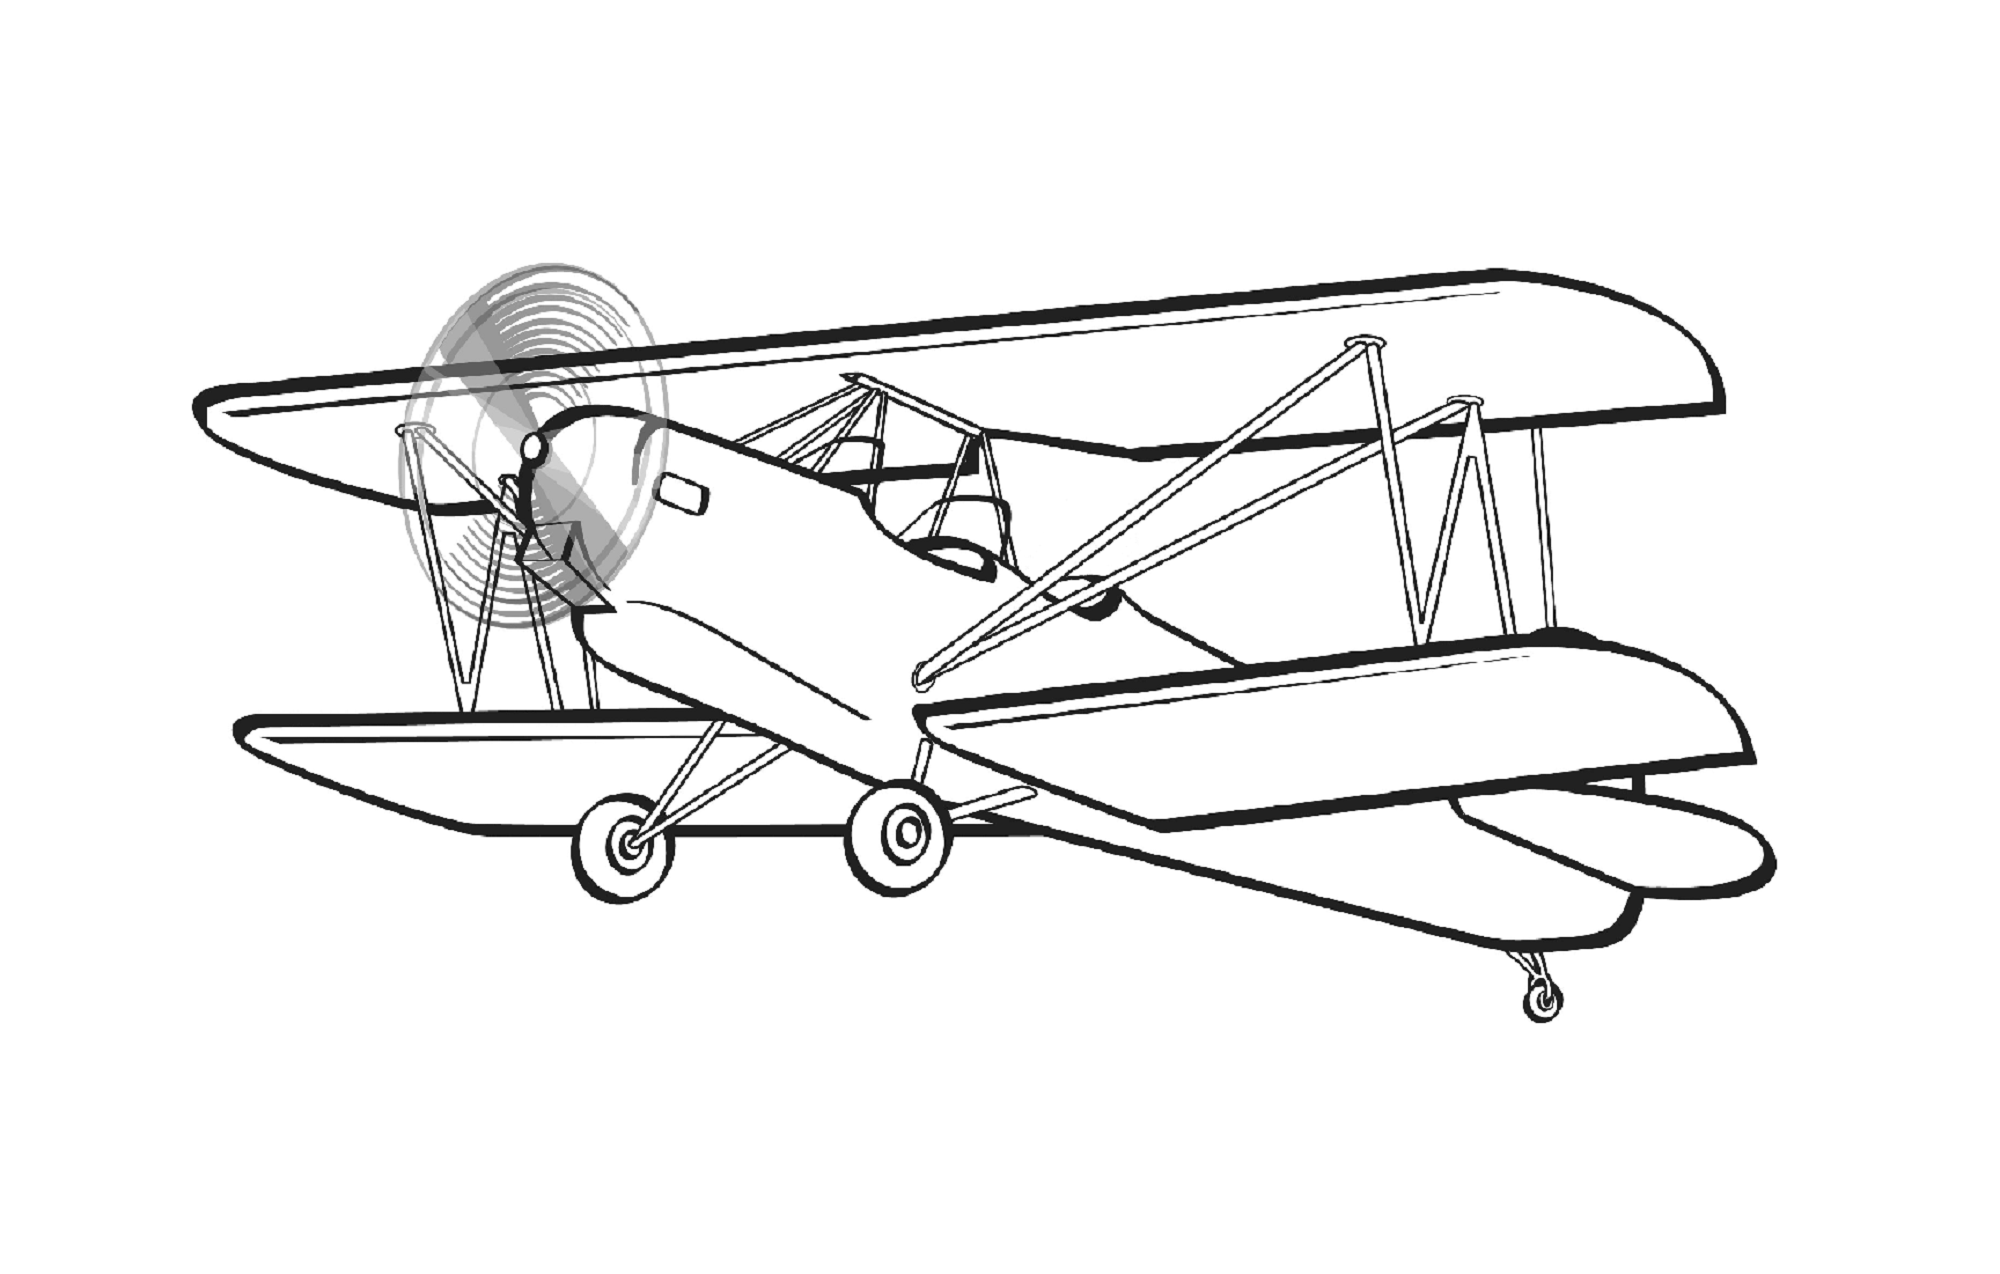 Biplane clipart outline. In tgm sports